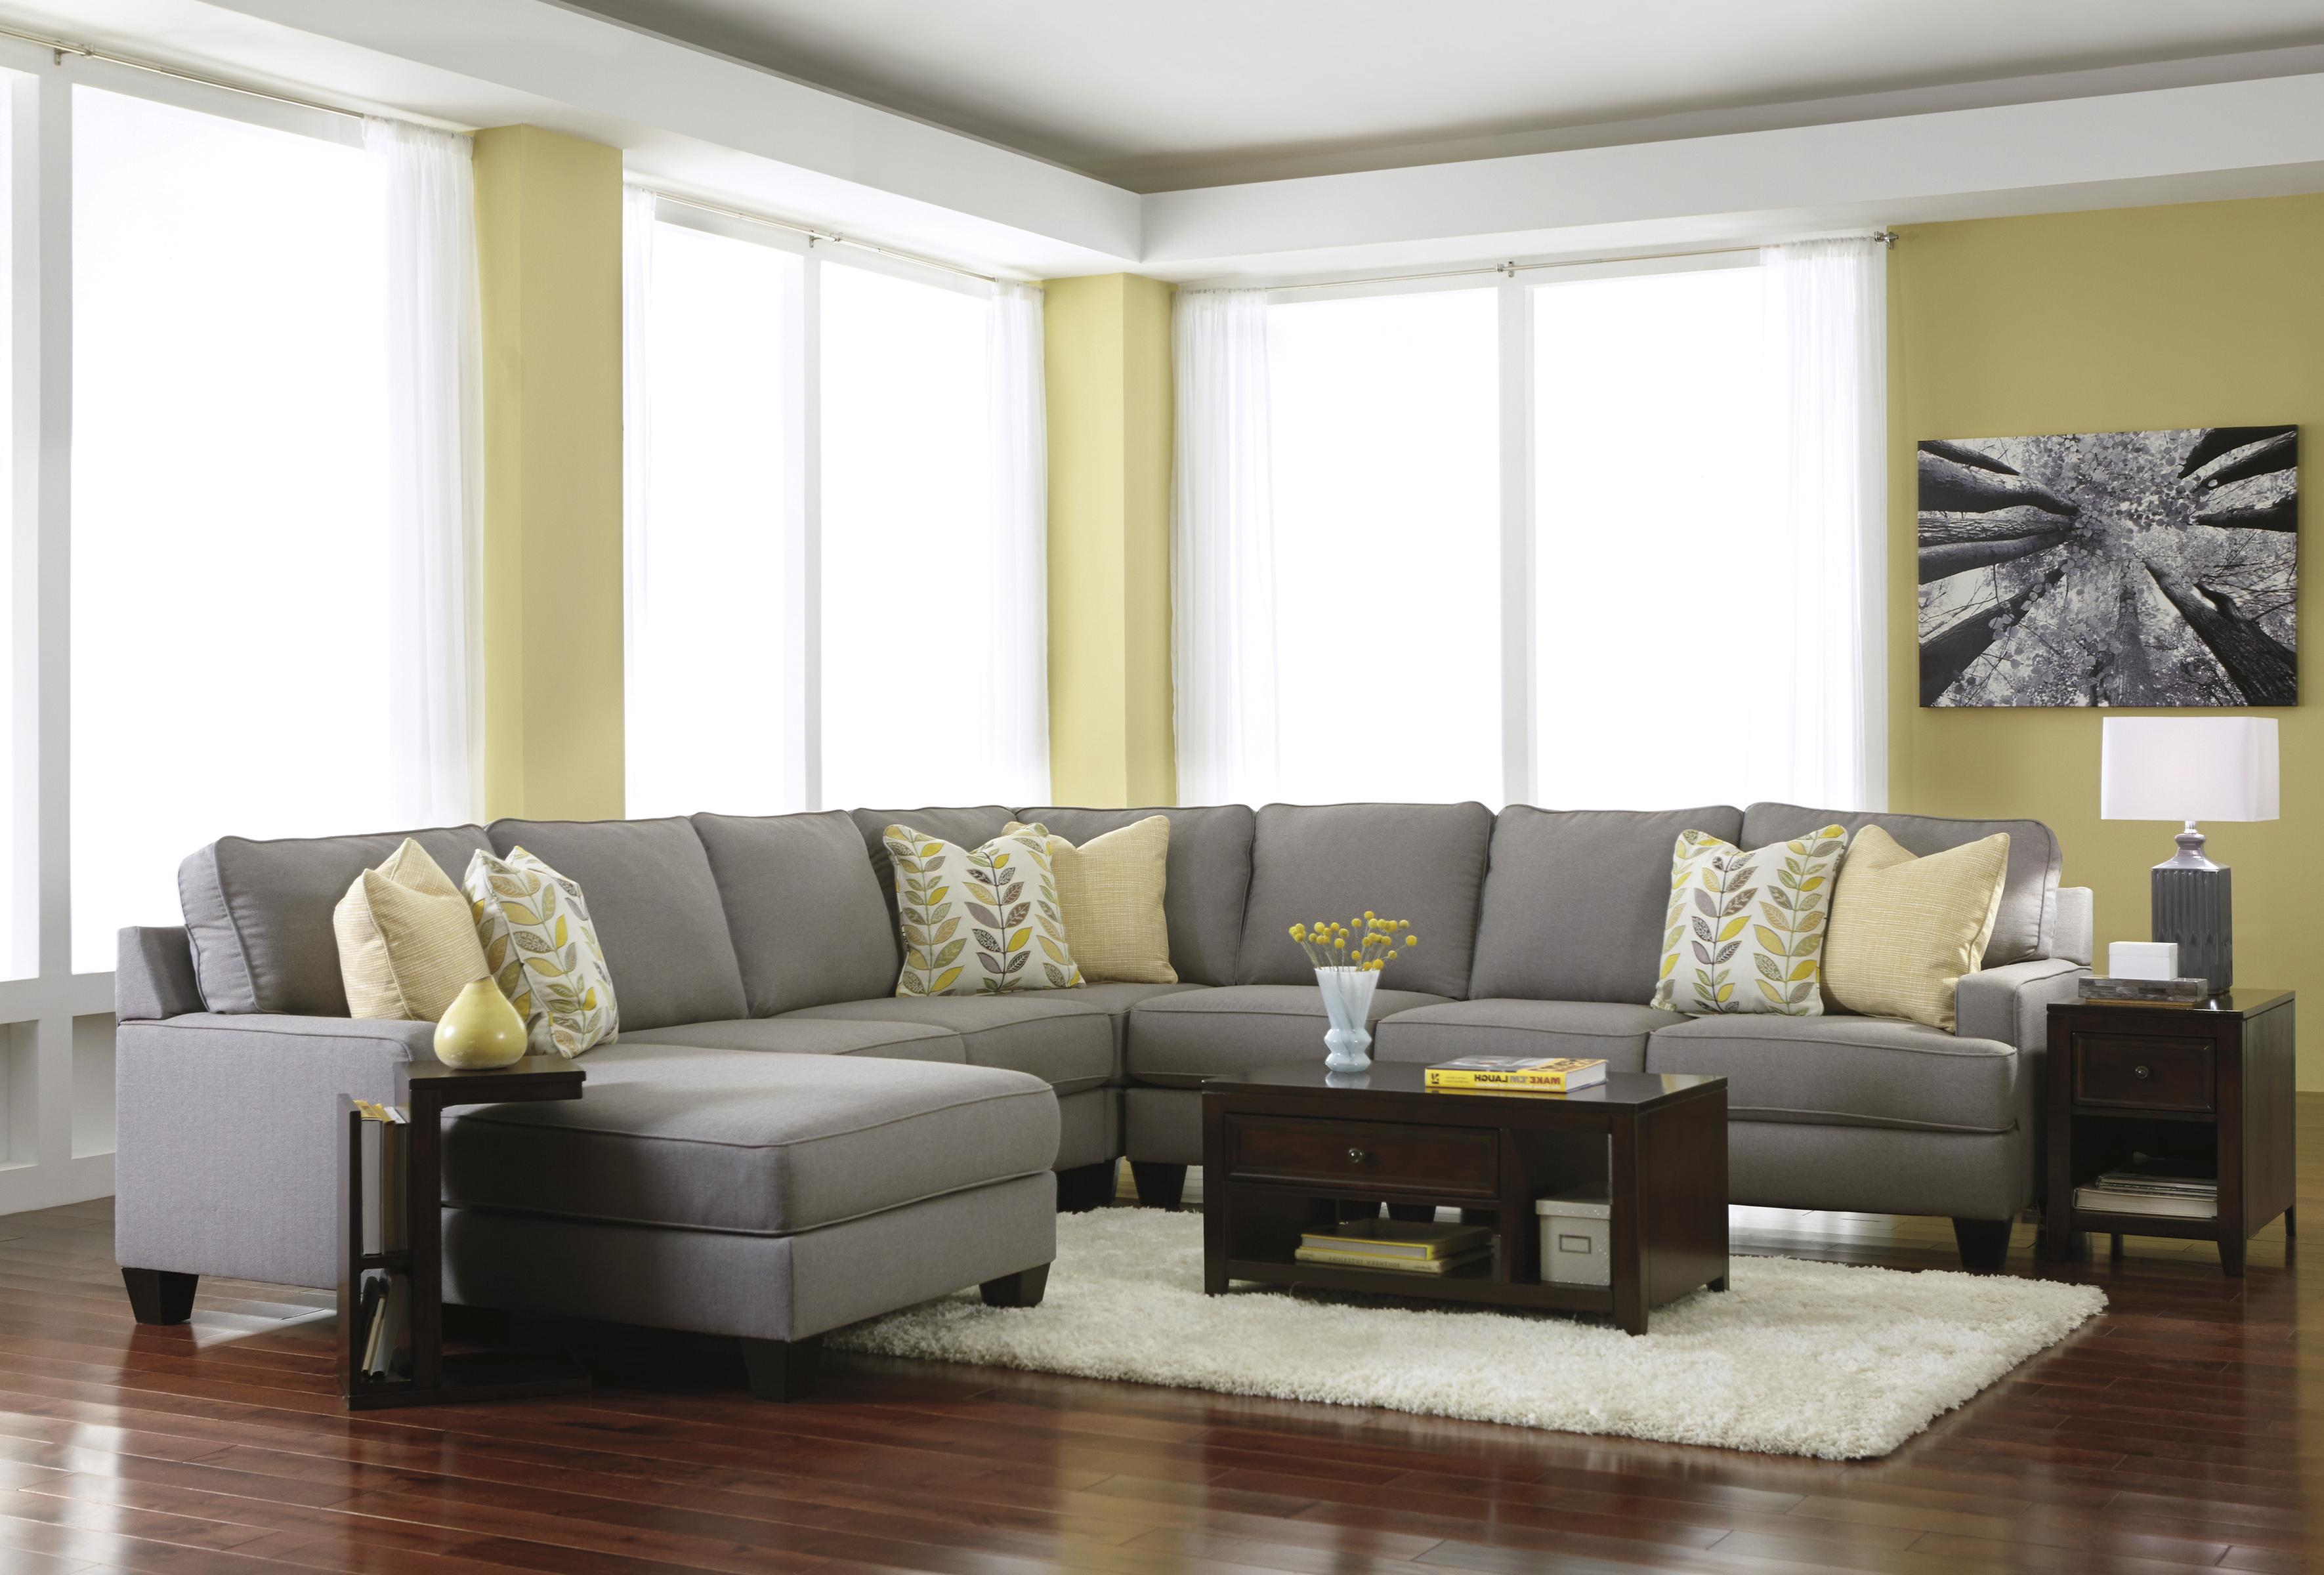 Modern 5 piece sectional sofa with left chaise for 5 piece sectional sofa with chaise